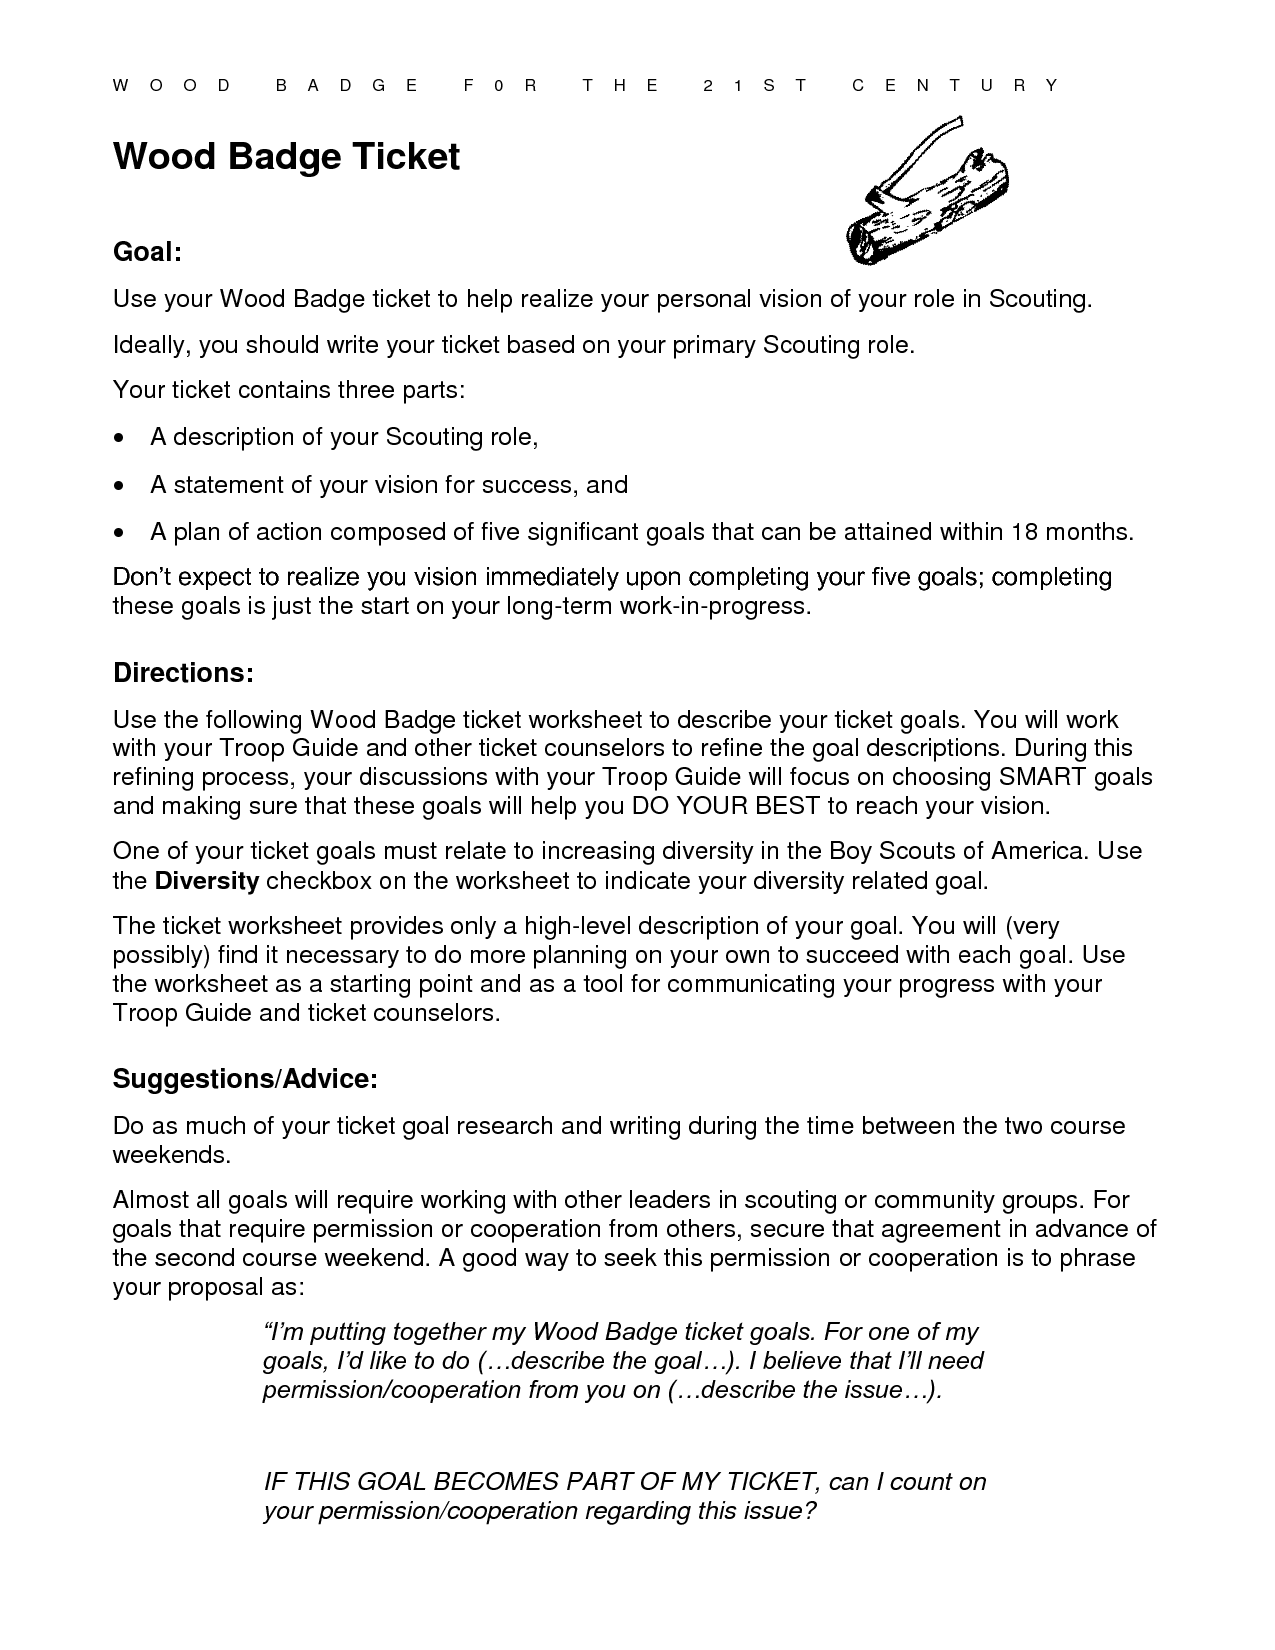 20 Best Images Of Action Plan Worksheet For Goals